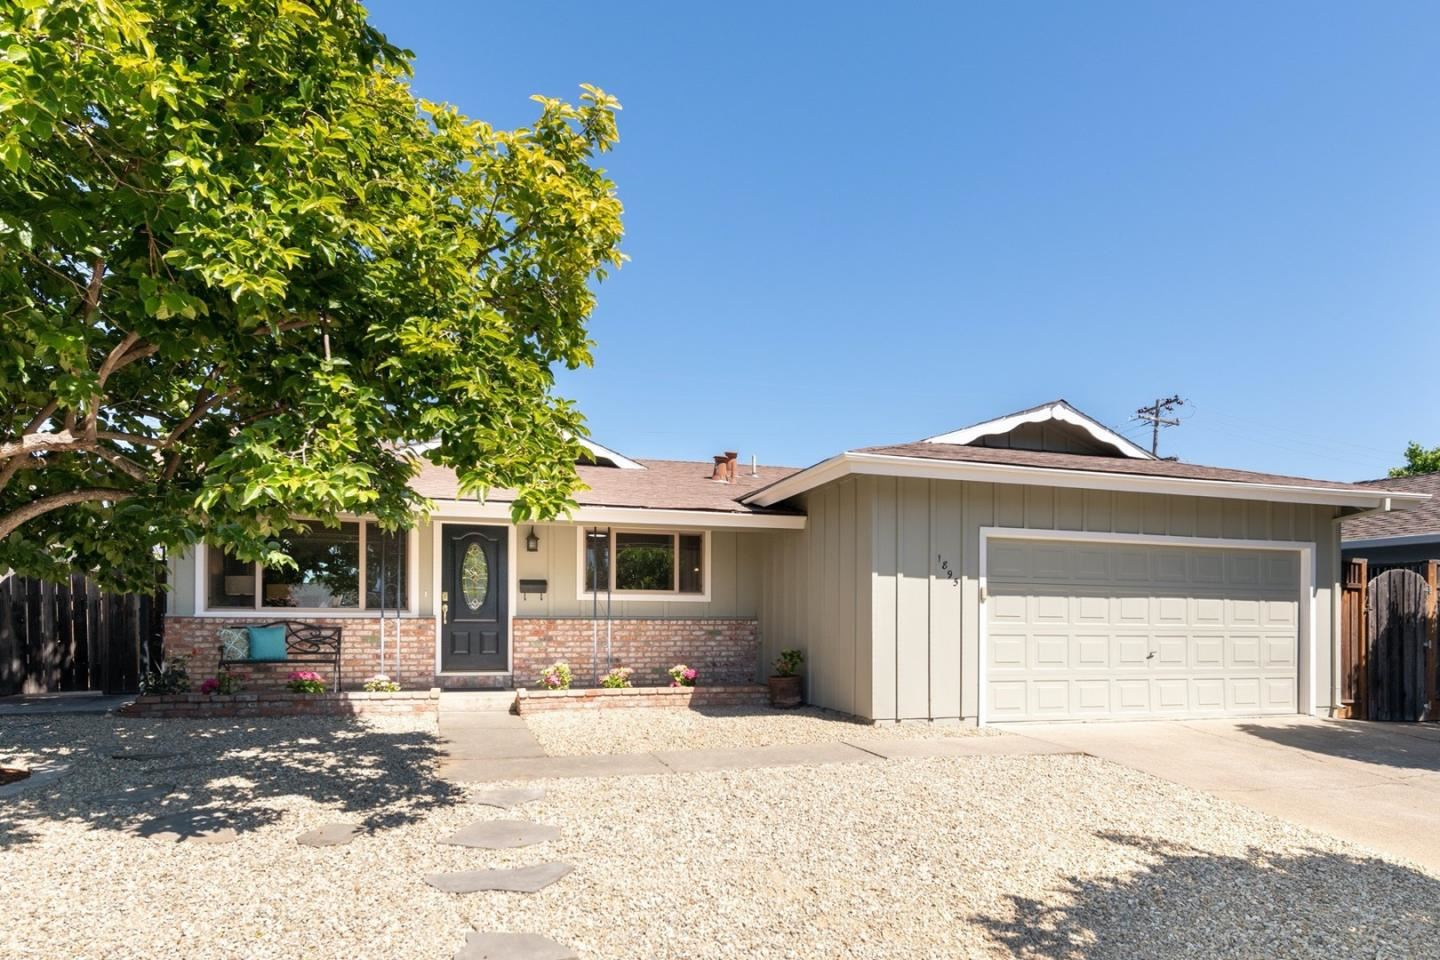 Photo for 1895 Palo Santo Drive, CAMPBELL, CA 95008 (MLS # ML81847356)